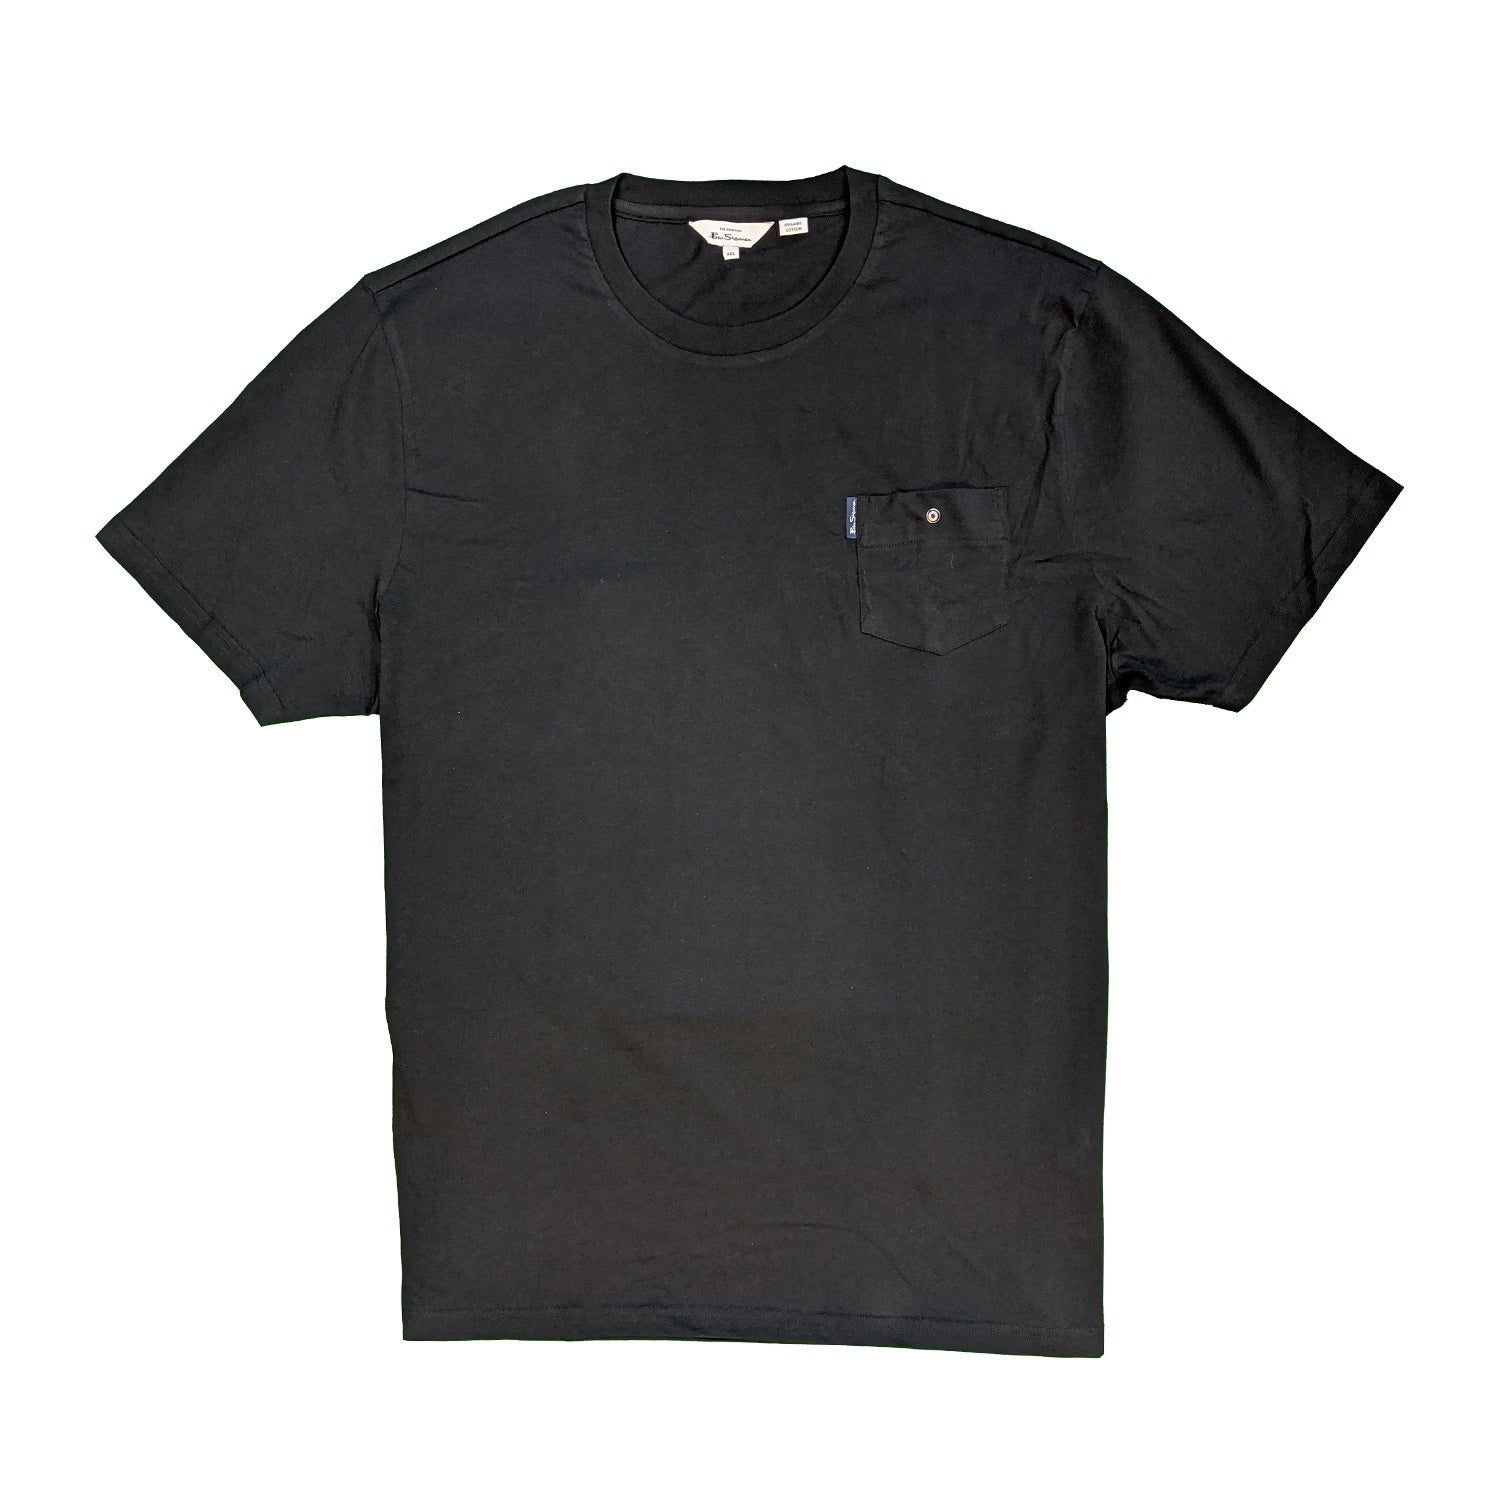 Ben Sherman T-Shirt - 0059326IL - Black 1